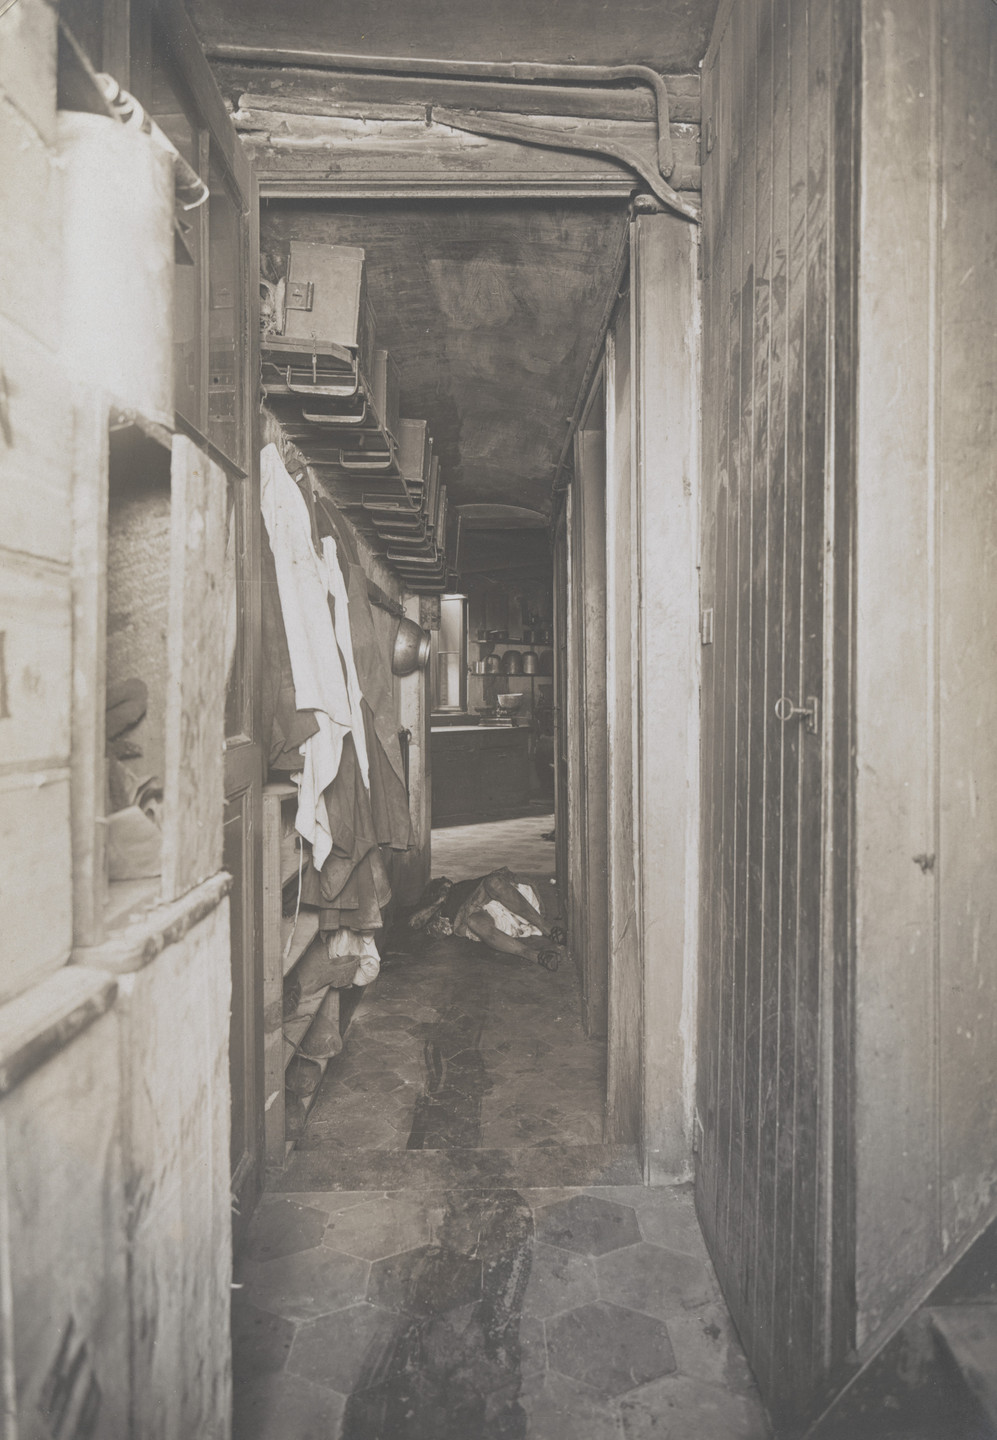 Unknown photographer. Untitled (crime scene: view down hall with body at end). 1913